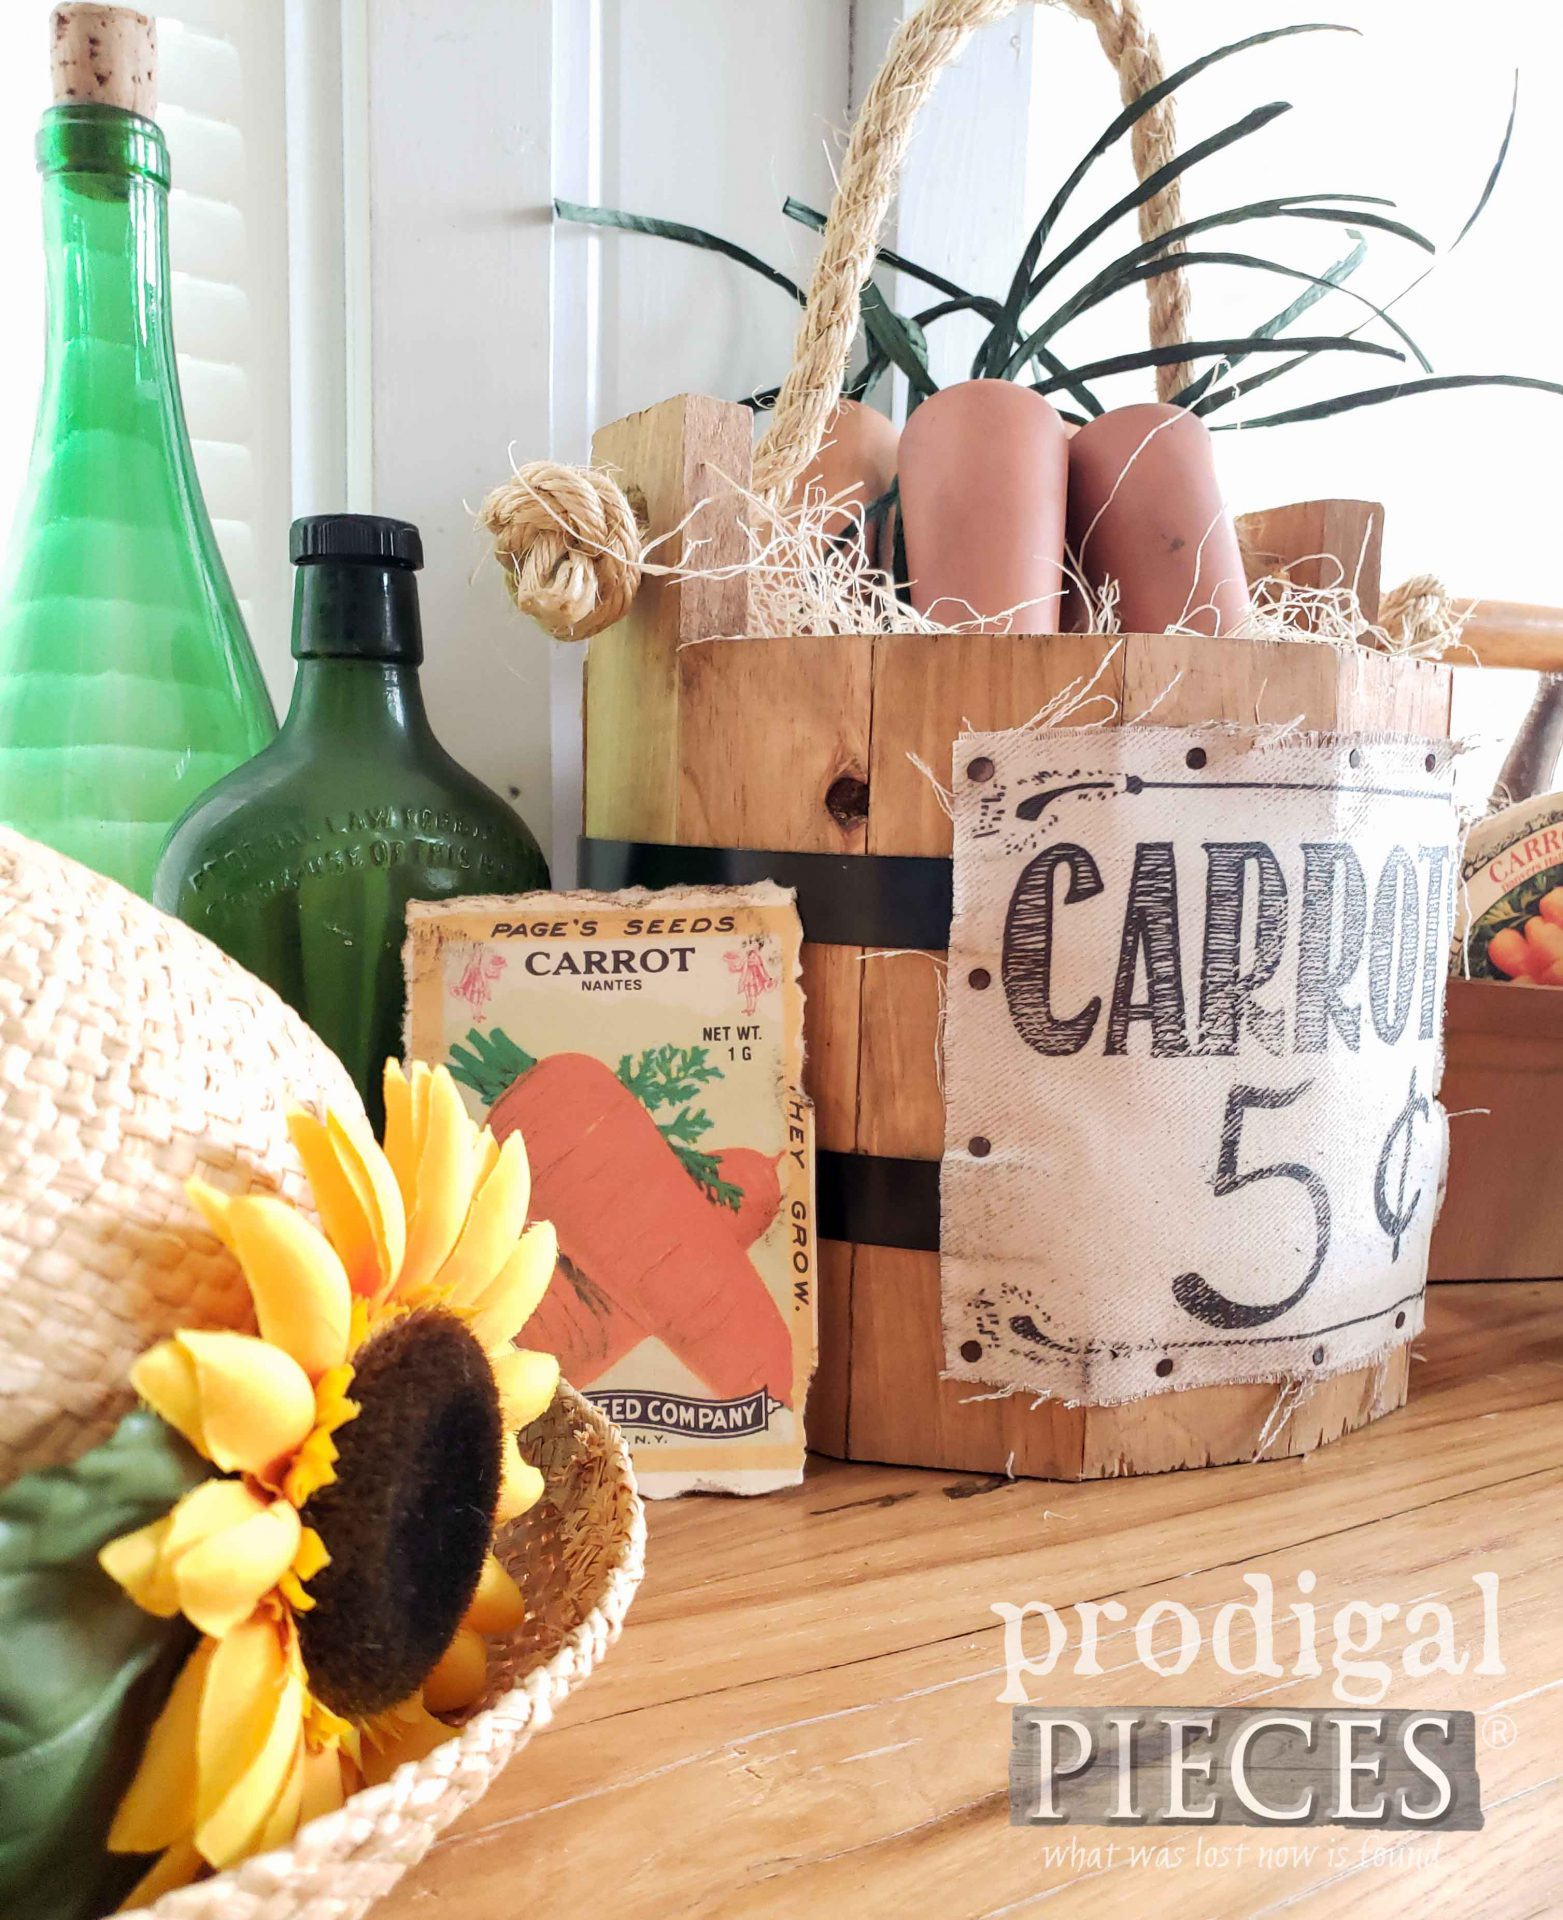 Farmhouse Spring Decor with DIY Carrots by Larissa of Prodigal Pieces | prodigalpieces.com #prodigalpieces #diy #spring #farmhouse #home #homedecor #crafts